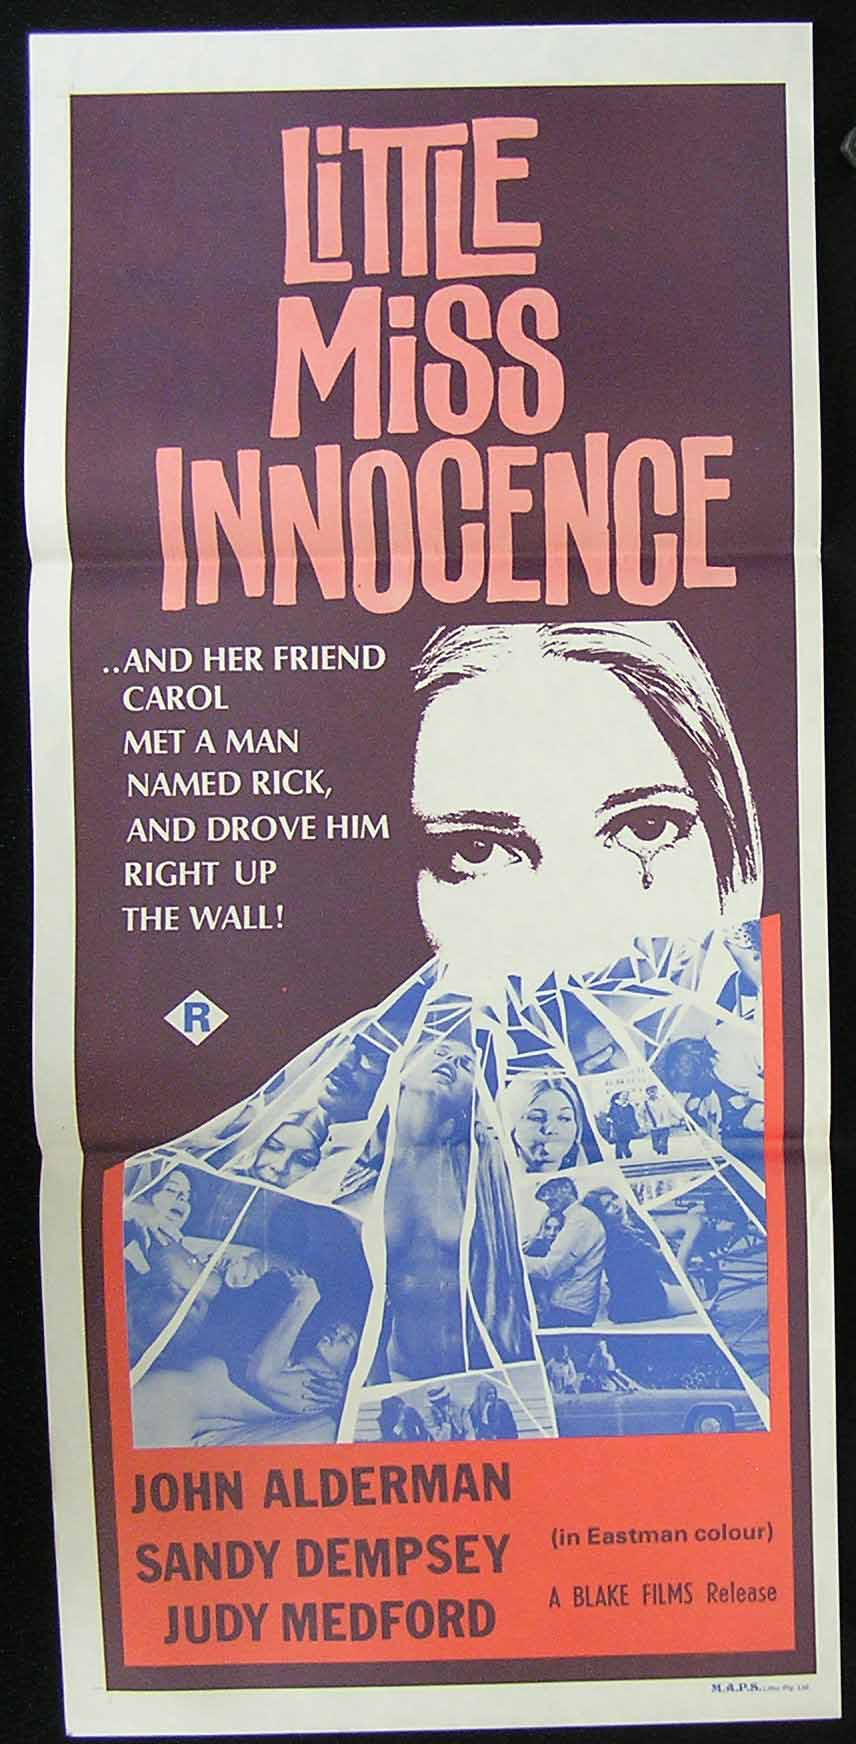 LITTLE MISS INNOCENCE '73 John Alderman Sexploitation Movie Poster